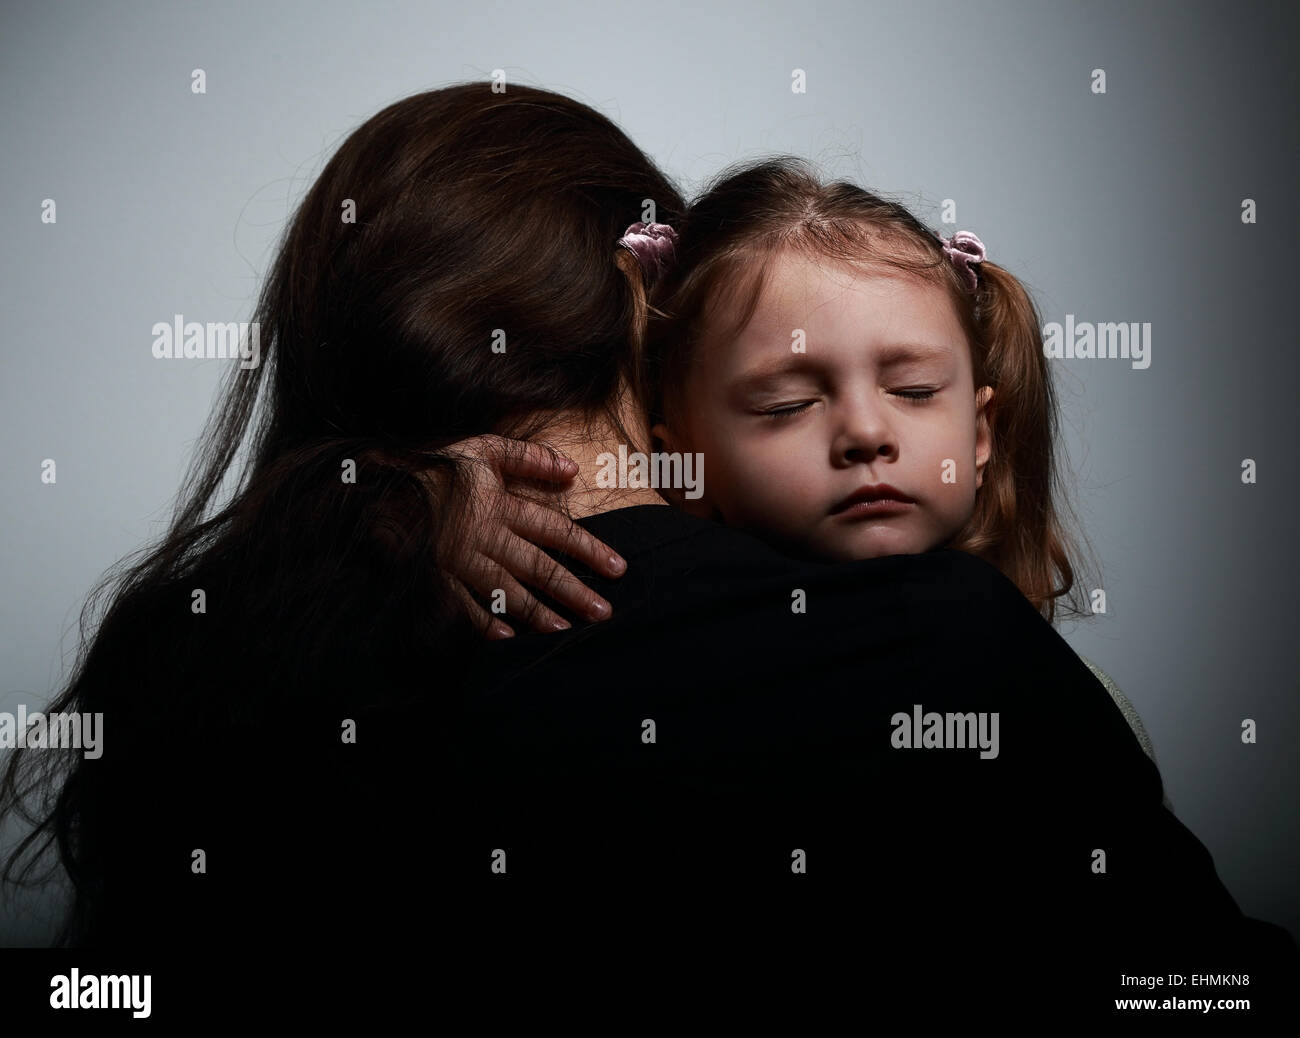 Sad crying daughter hugging her mother with sad face on dark shadows background - Stock Image